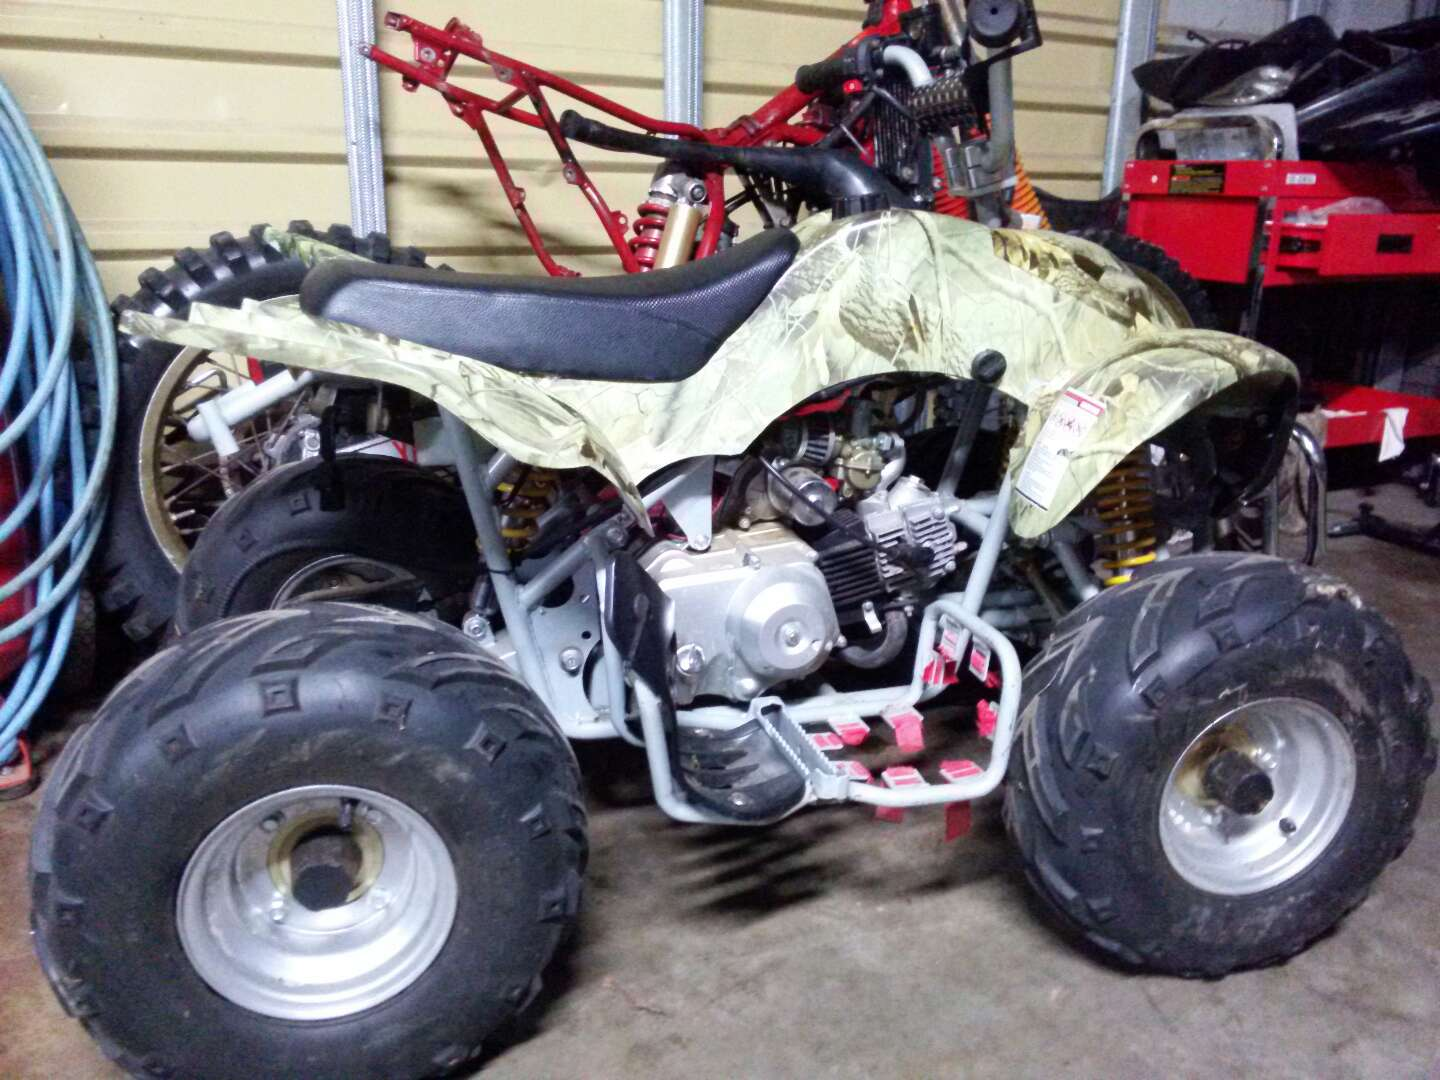 4 Wheelers For Sale Dallas Tx >> Atv 4 wheeler kids 90cc for sale in Dallas, TX - 5miles: Buy and Sell